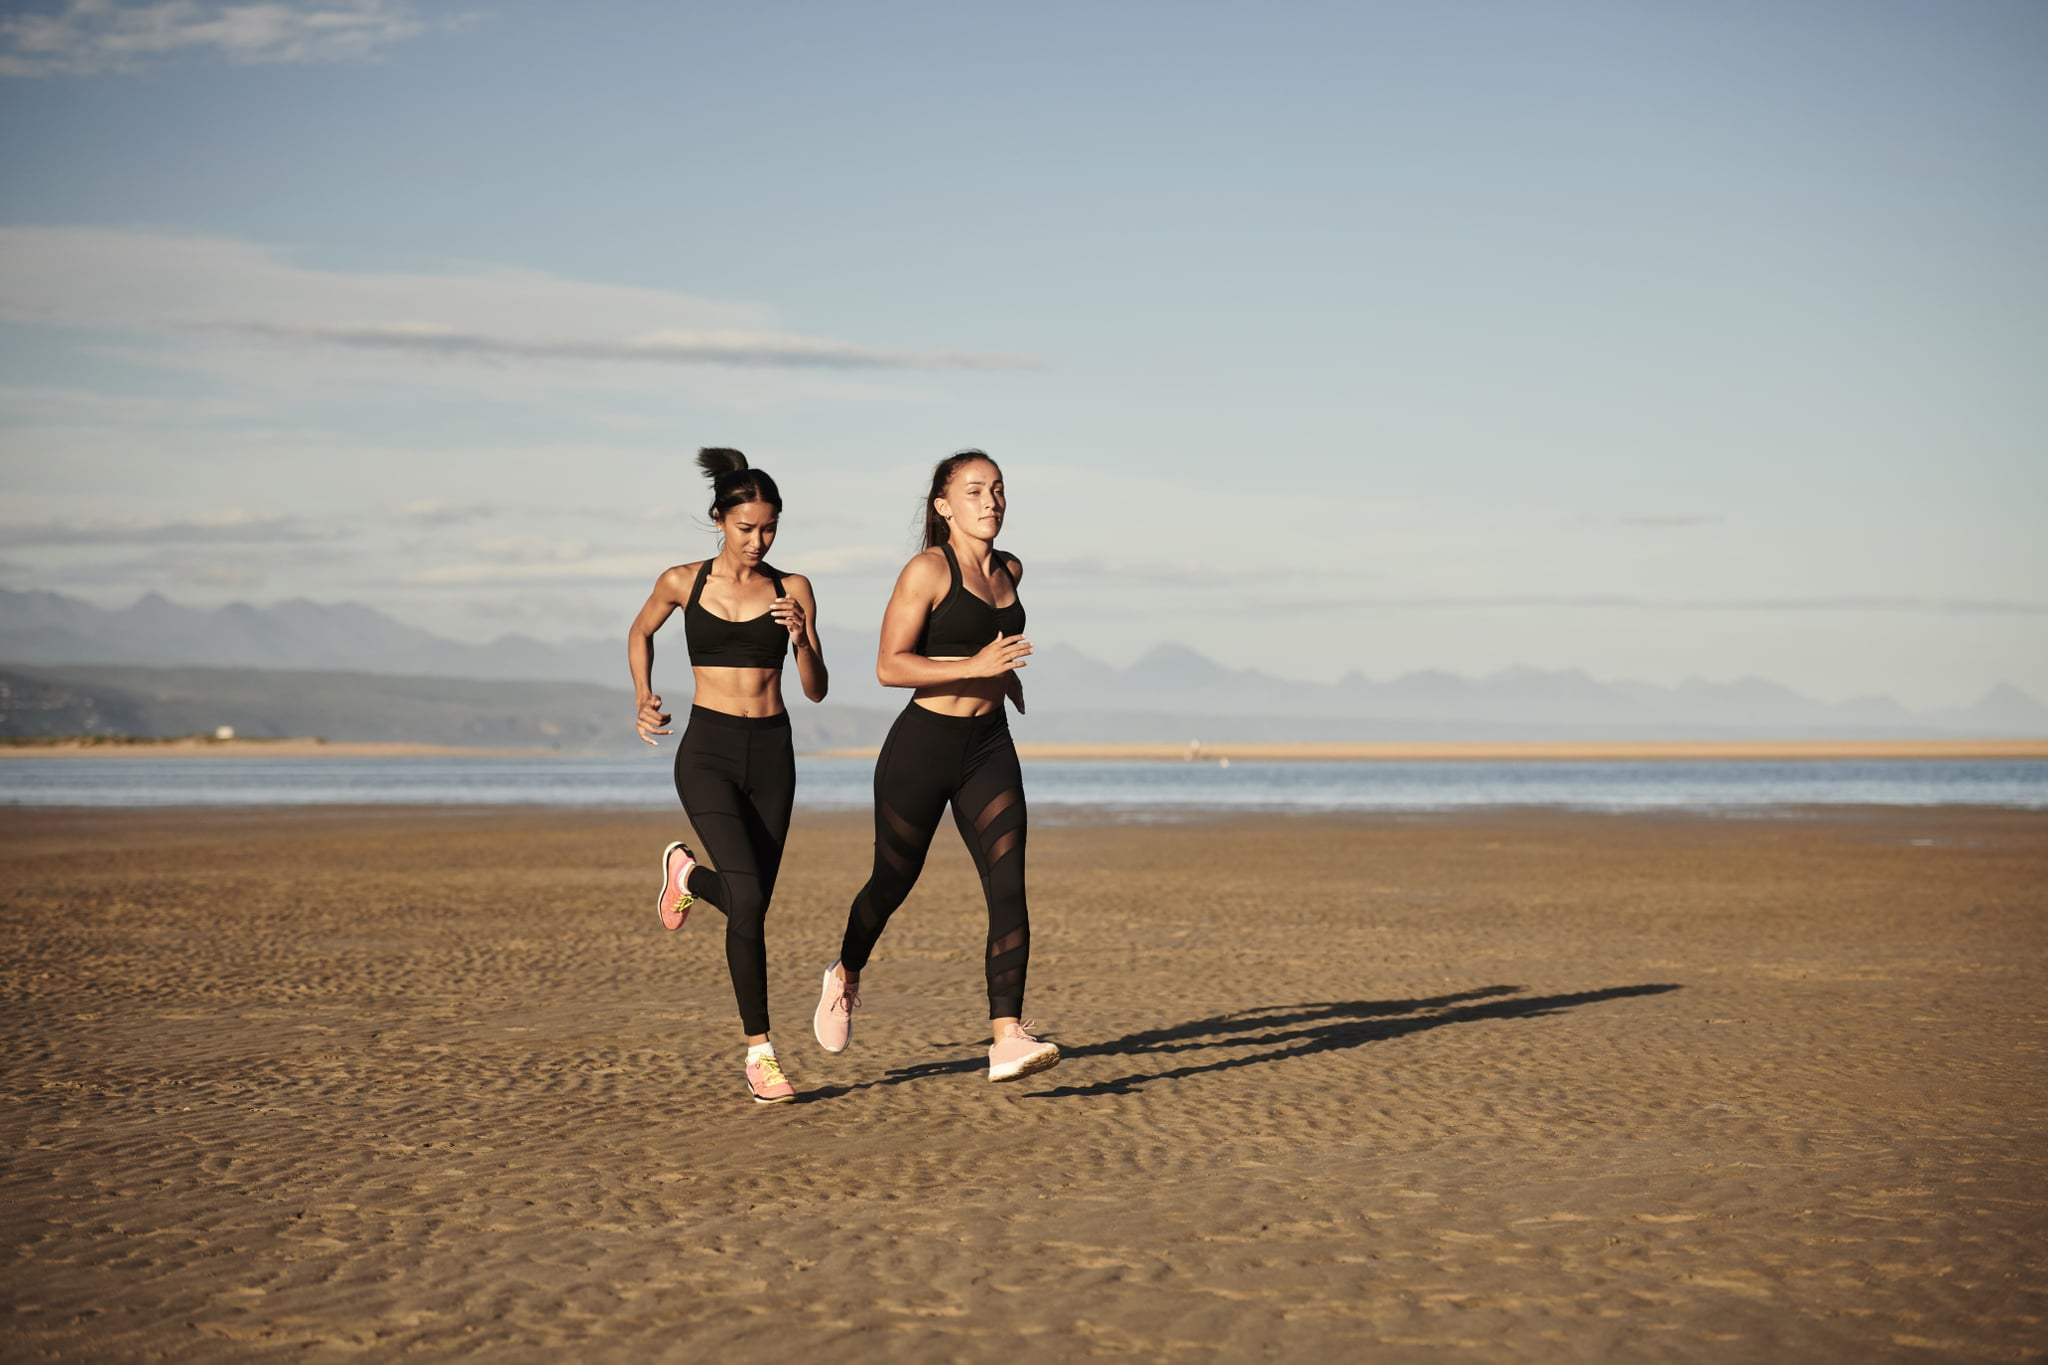 2 female runners on beach wearing black outfits